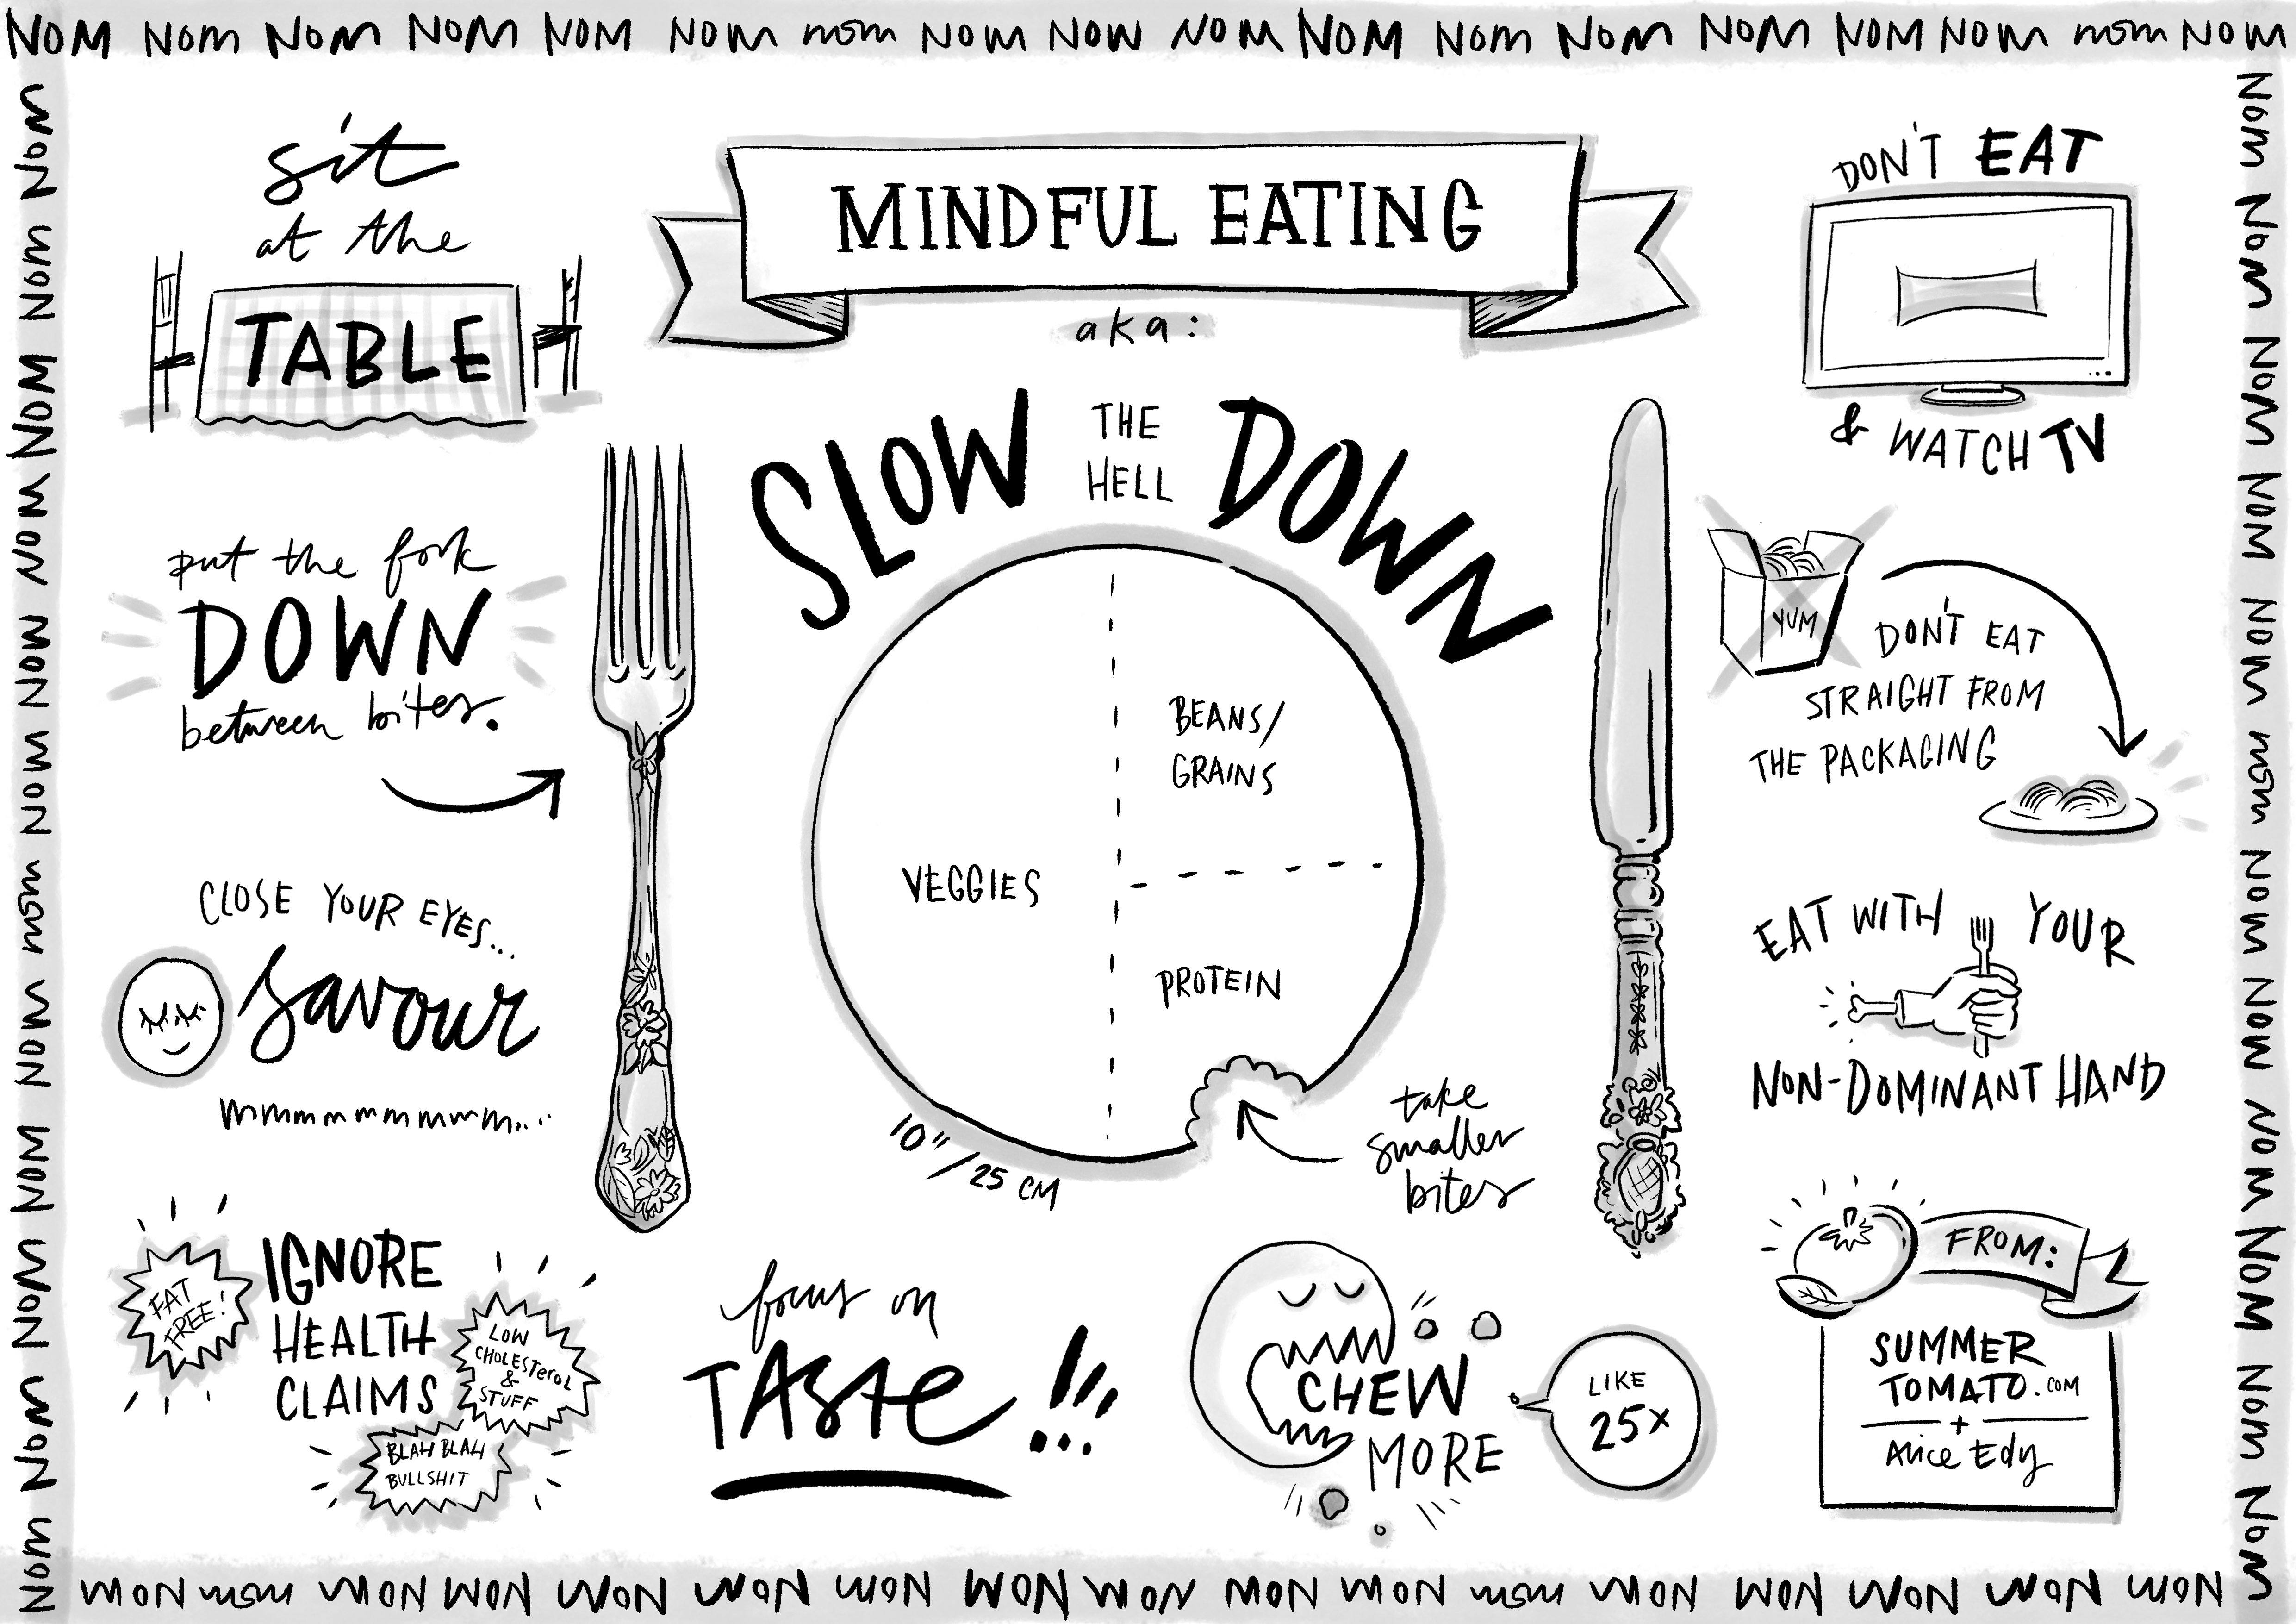 Use This Mindful Eating Placemat To Remember To Slow Down